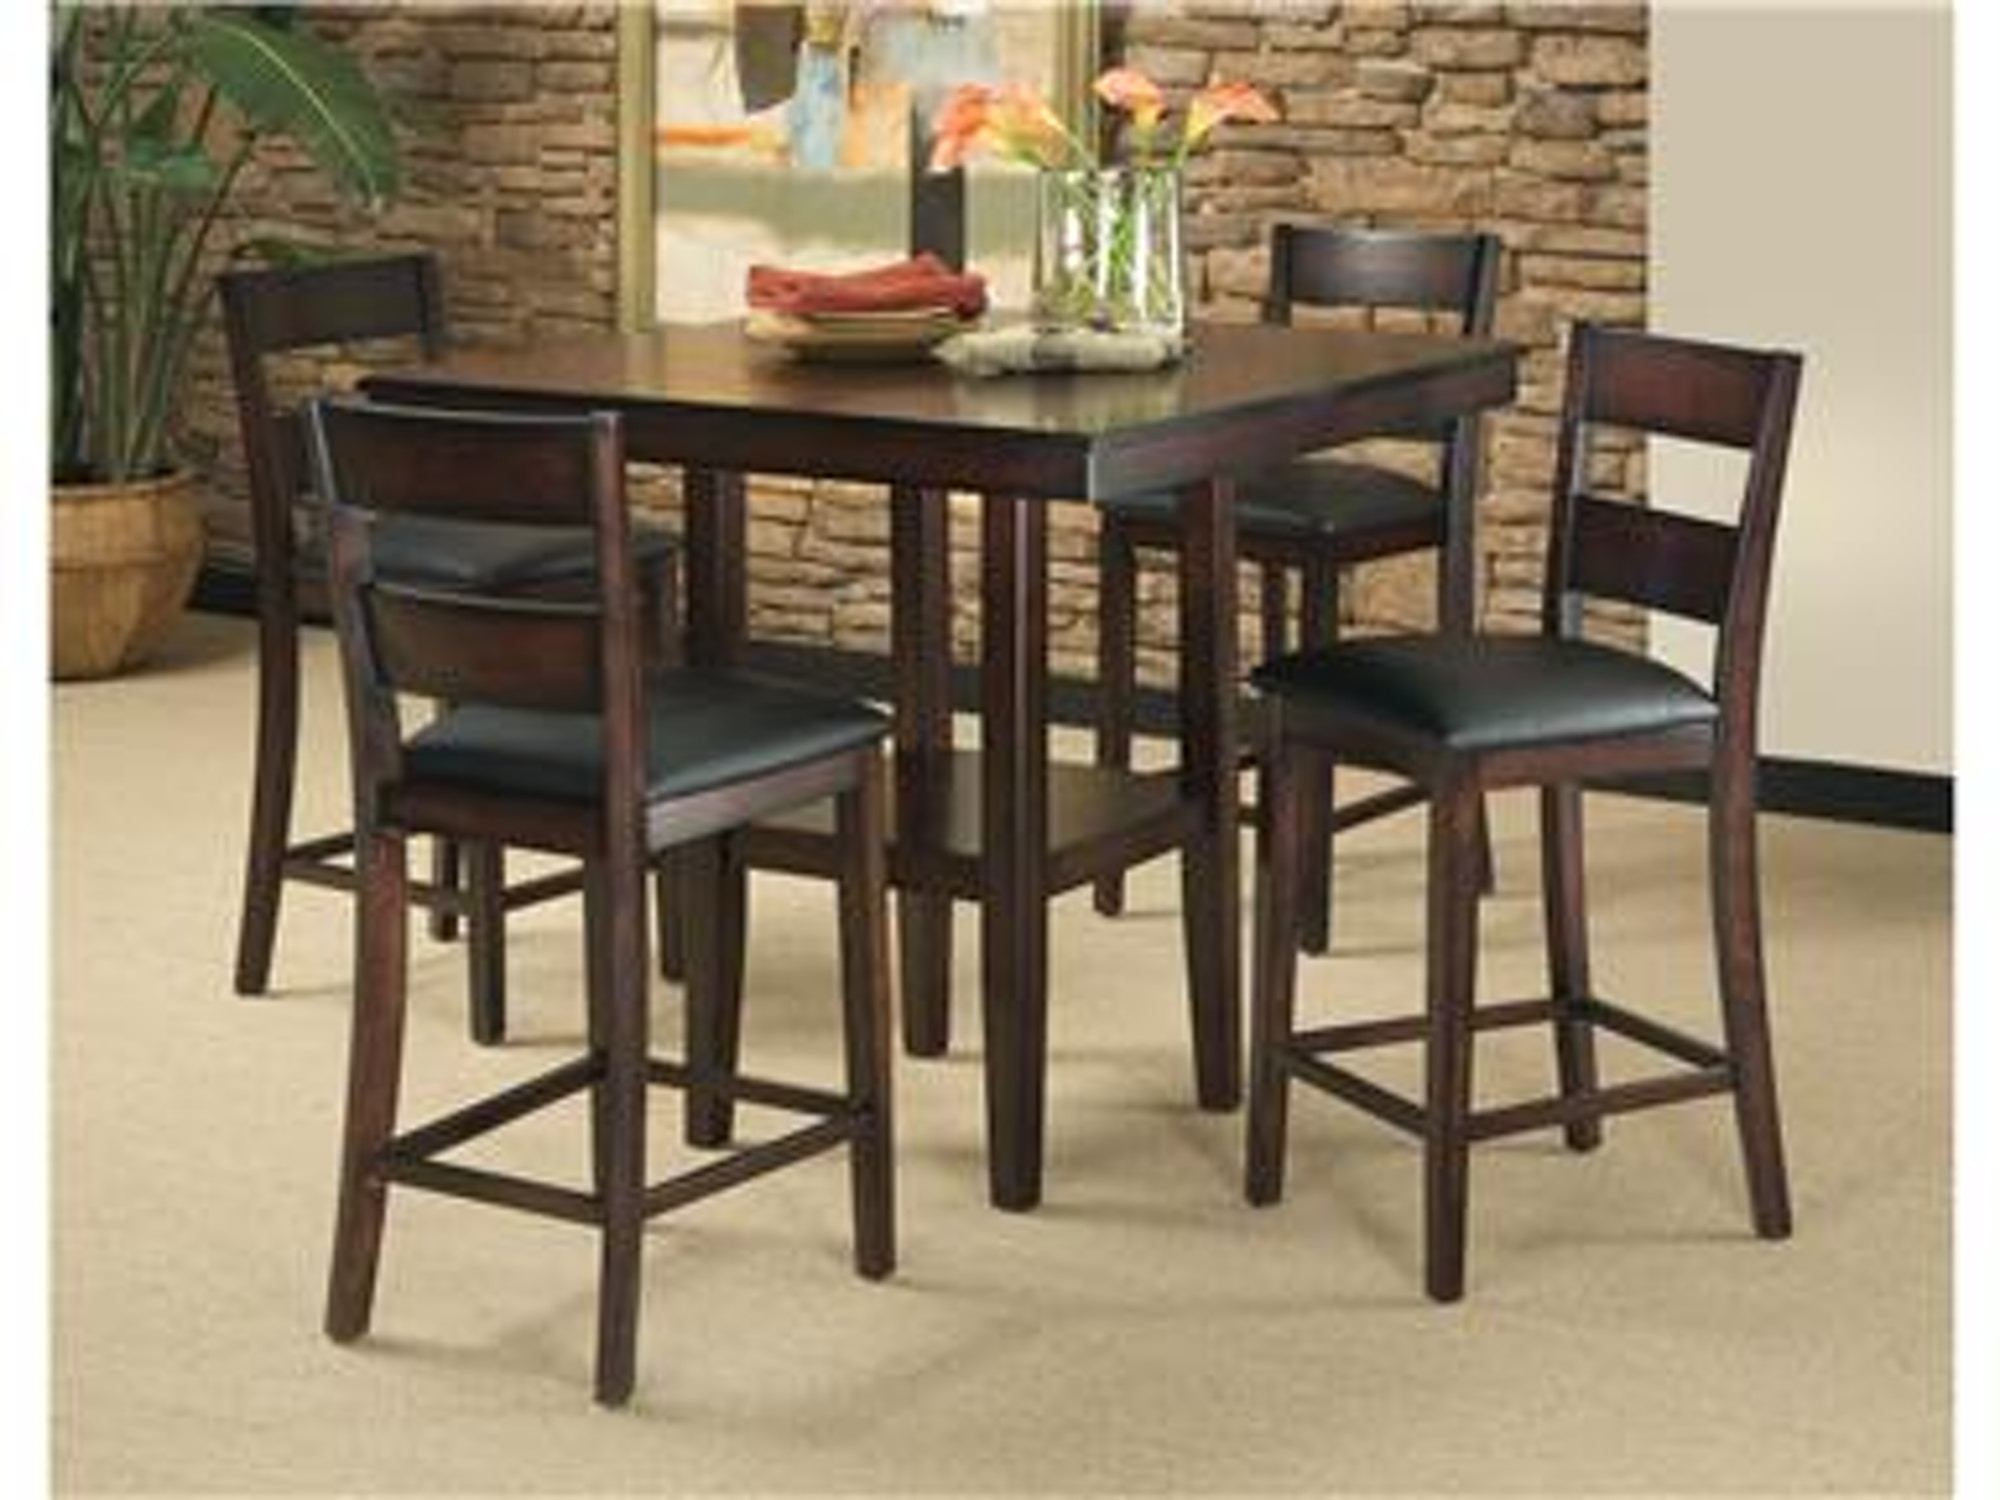 034432 Pendleton Counter Height Dining Set